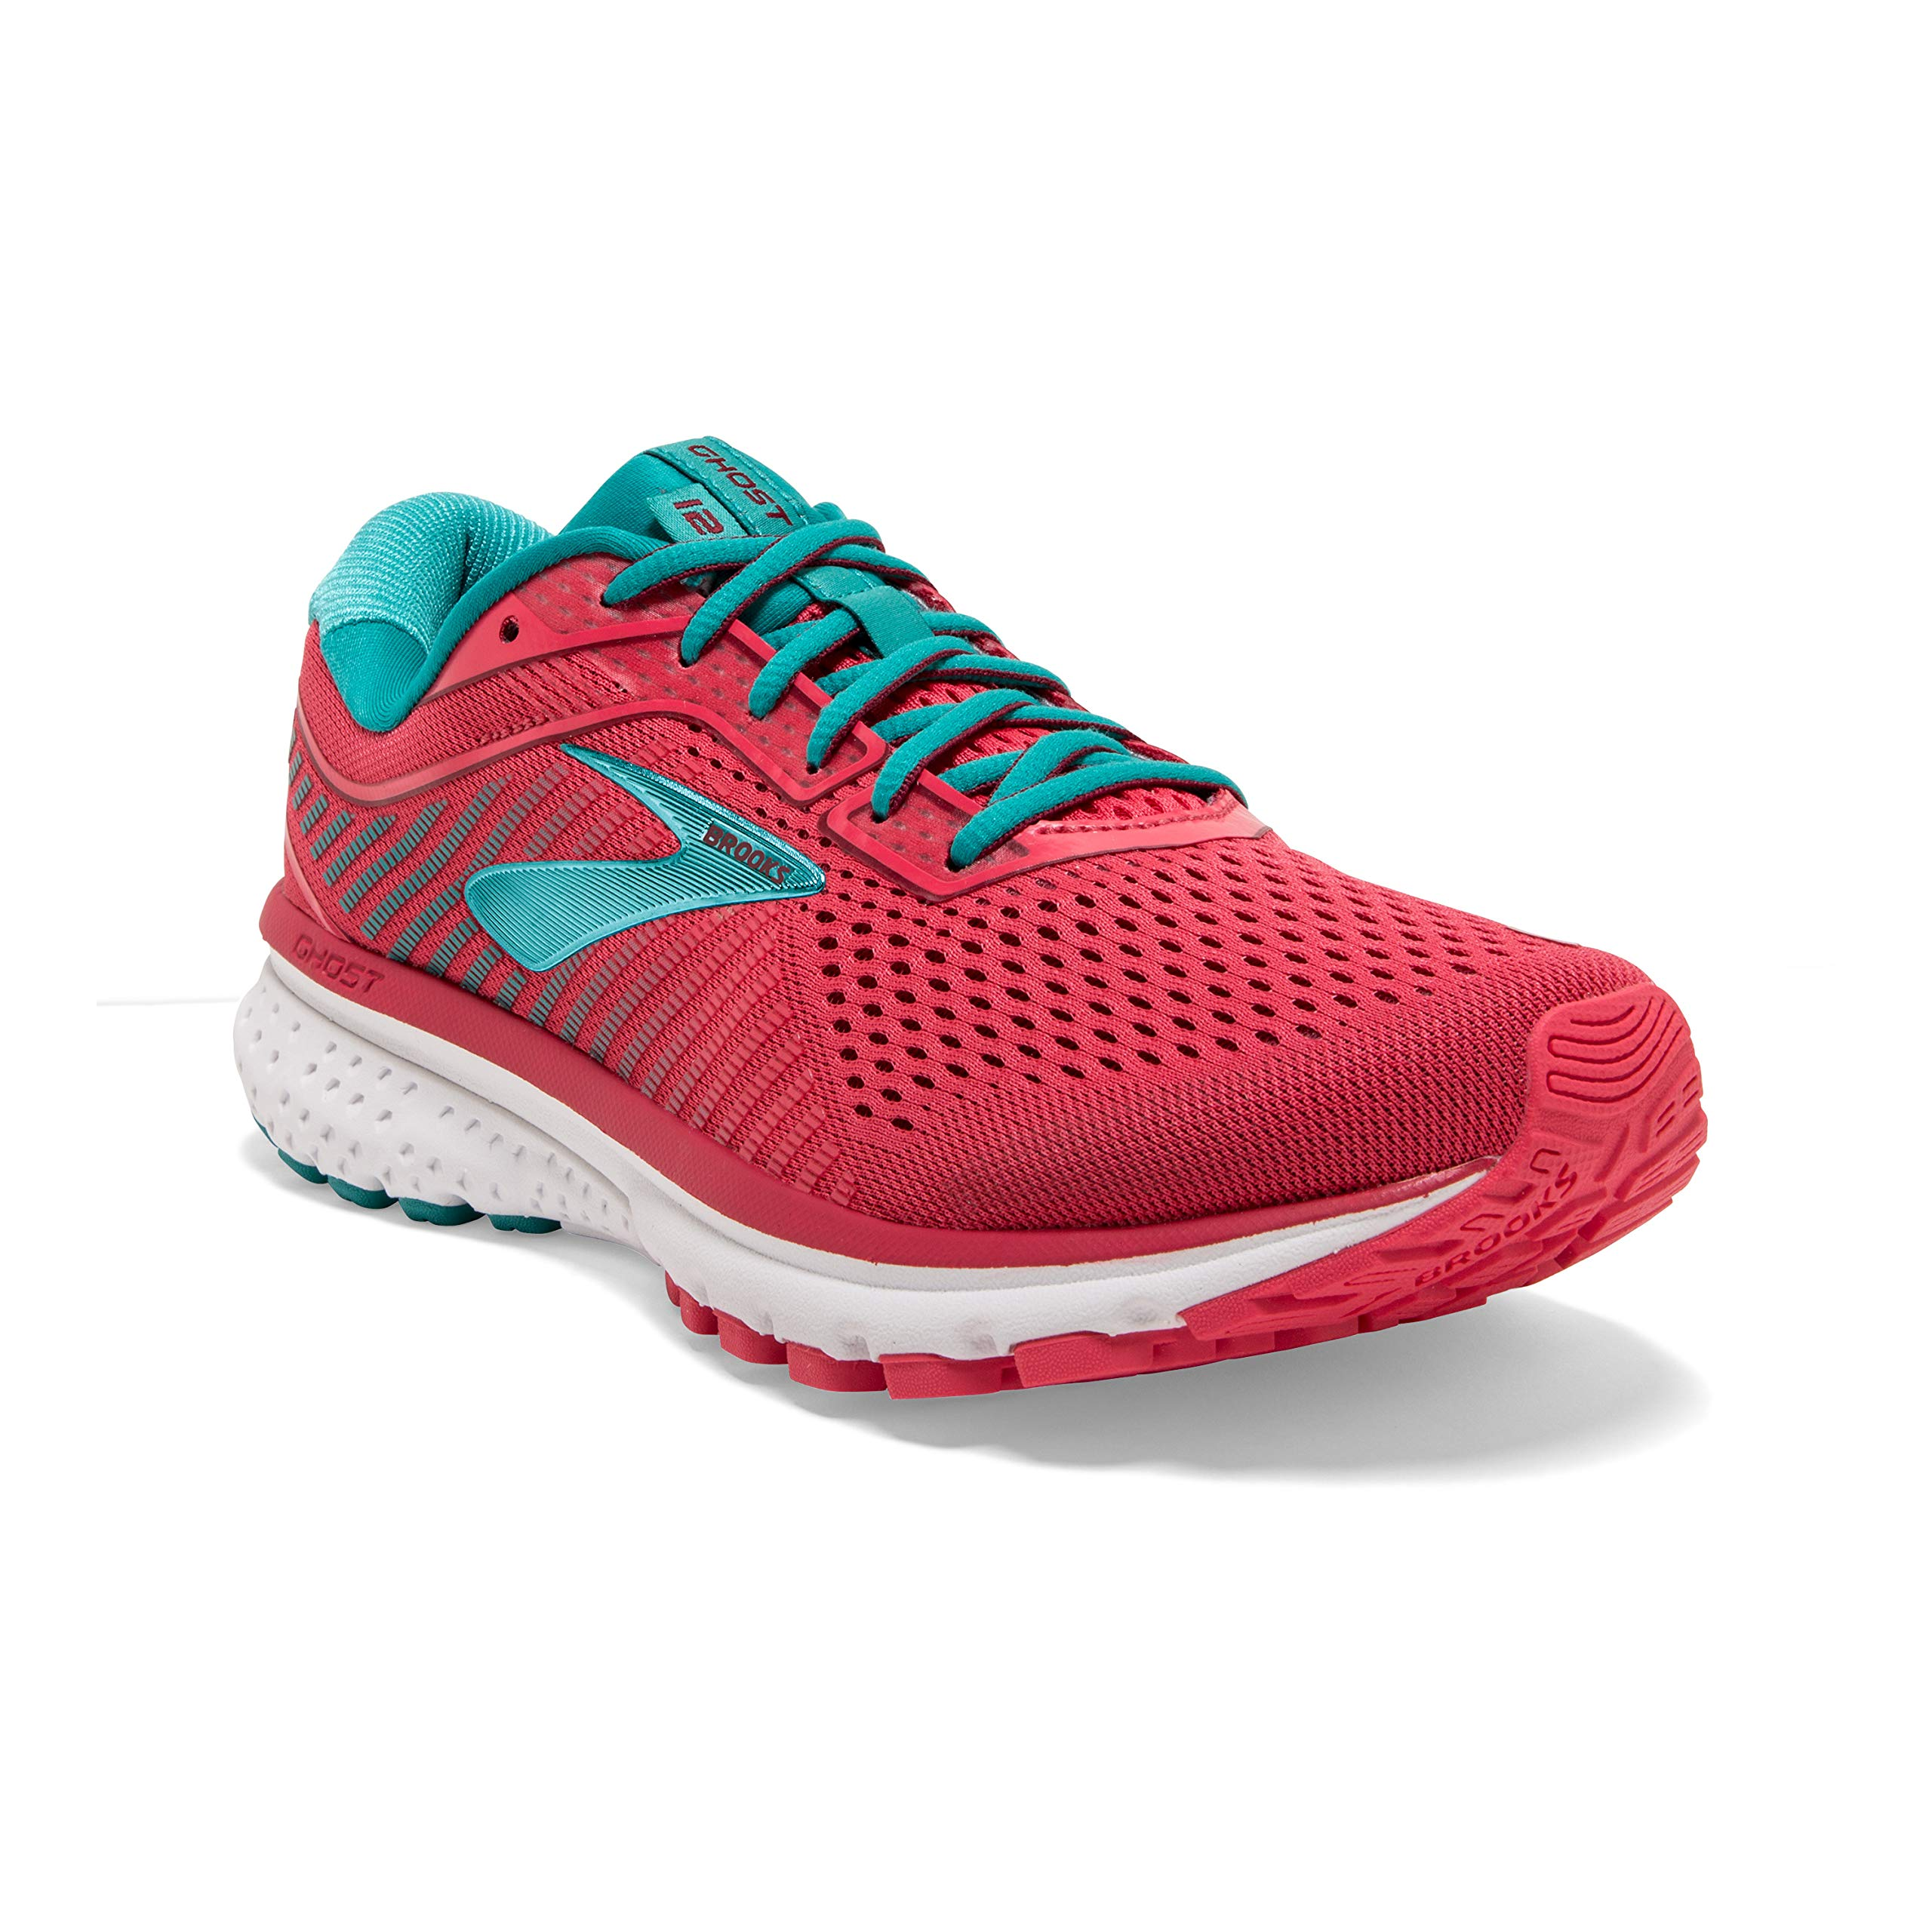 Brooks Womens Ghost 12 Running Shoe - Teaberry/Rumba/Viridian - B - 8.5 by Brooks